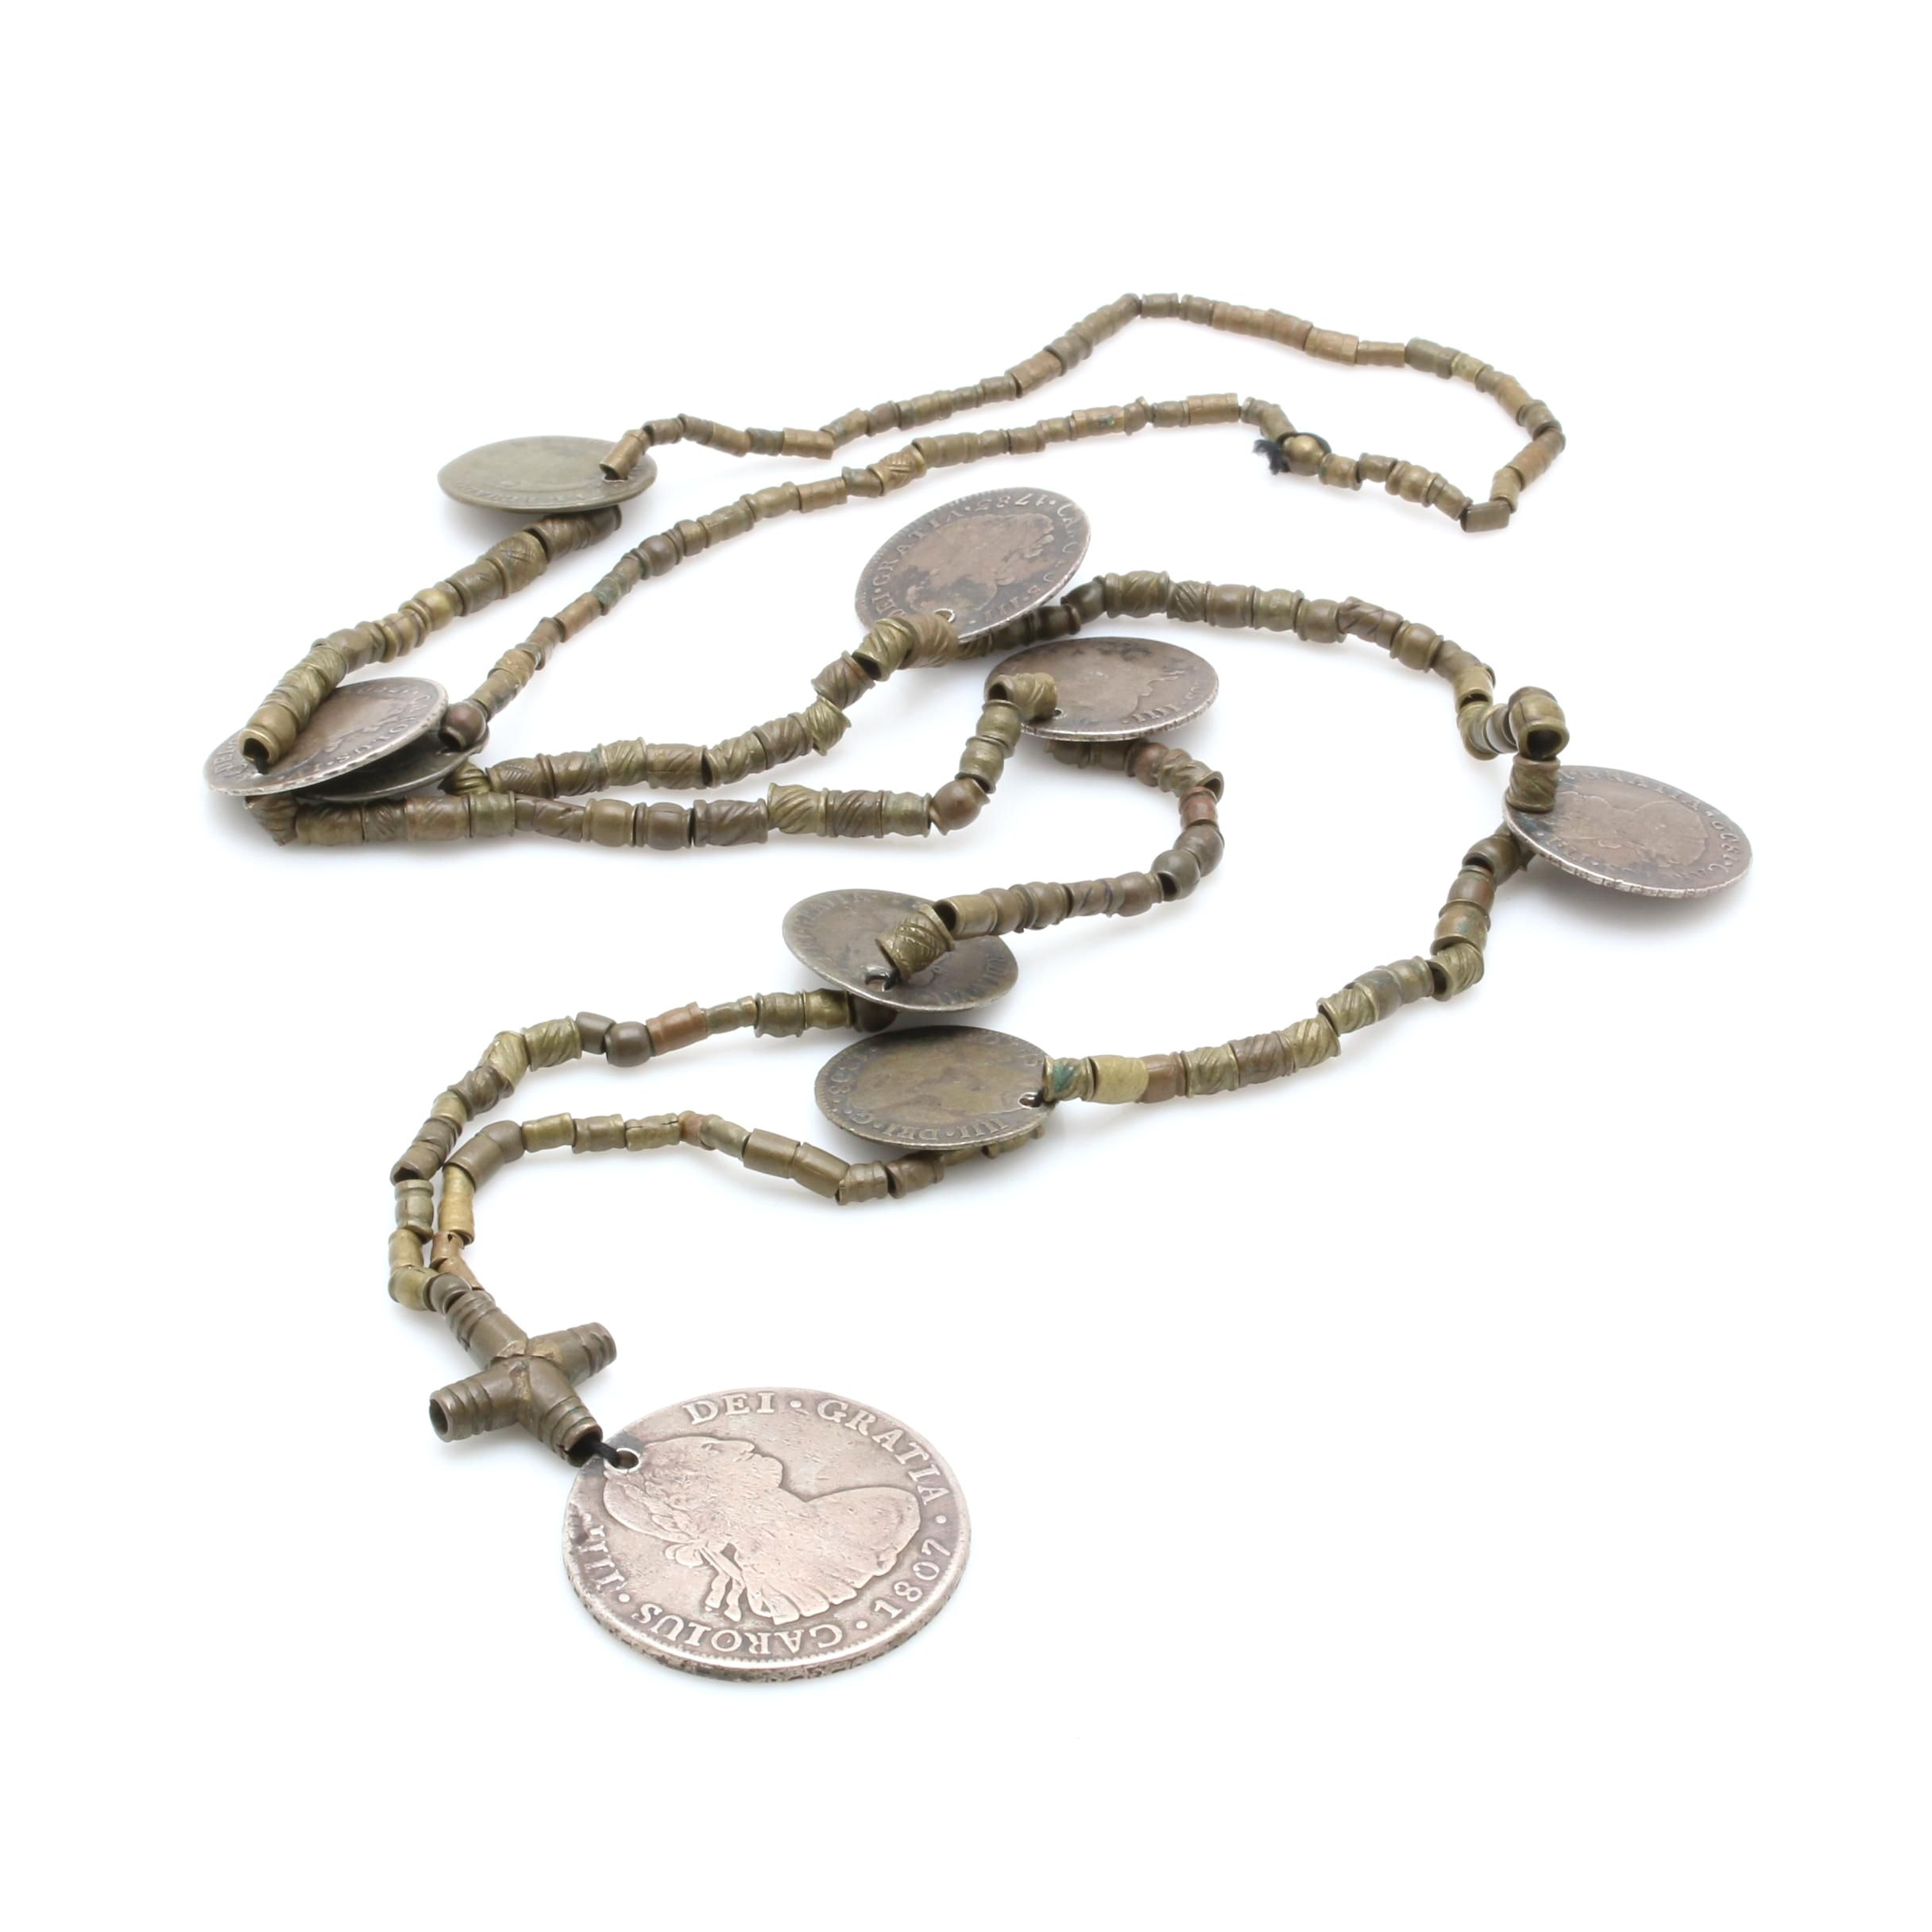 Moroccan Berber Style Necklace with Antique Silver Mexican and Ecuadorian Coins